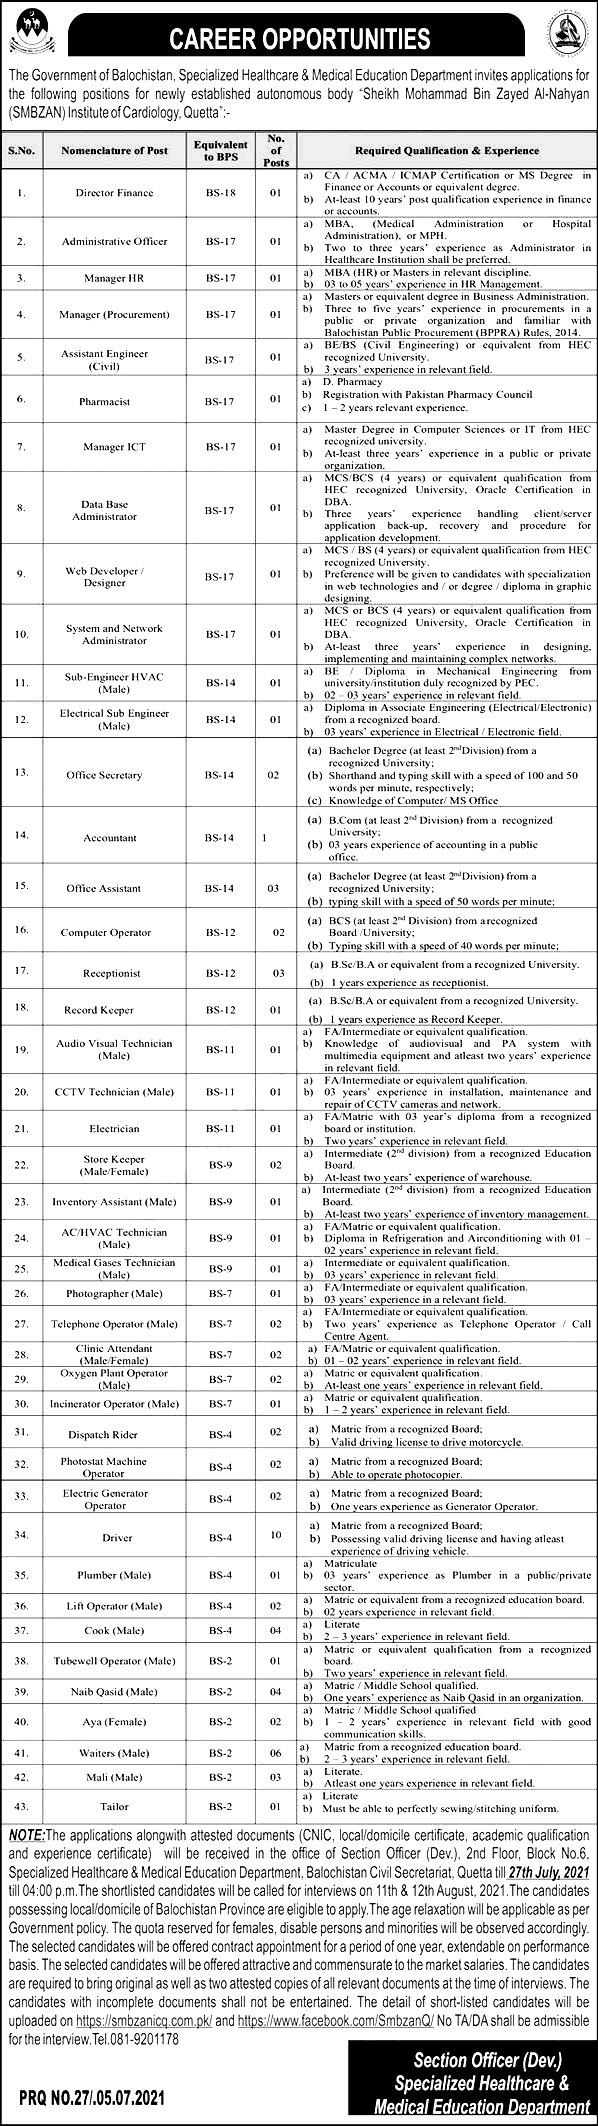 Specialized Healthcare & Medical Education Department Balochistan Jobs 2021